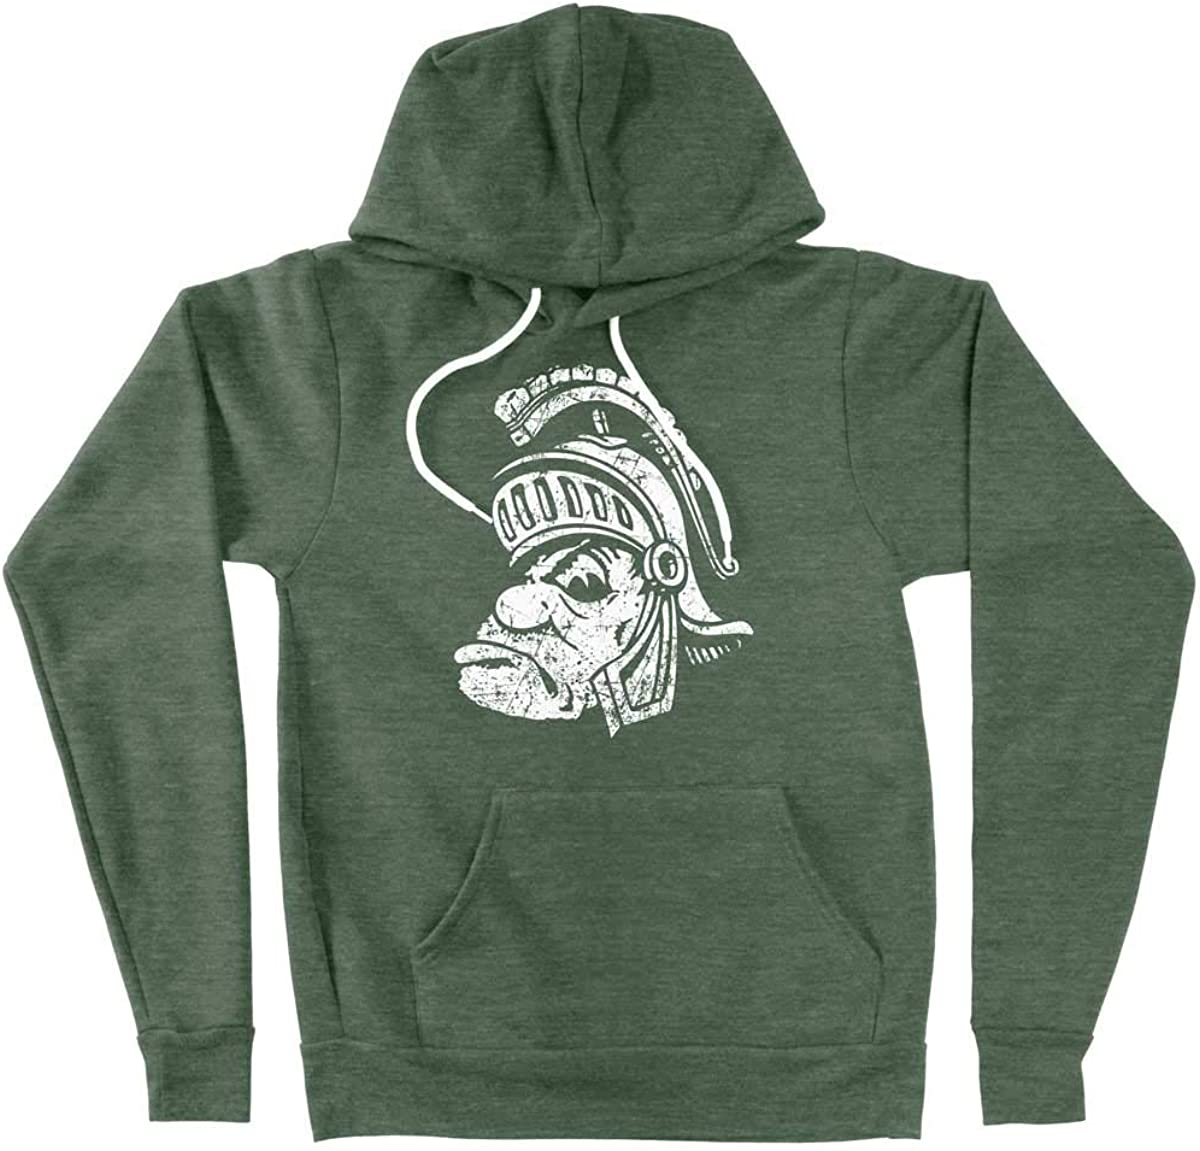 Michigan State Spartans Gruff Sparty T-Shirt Sweatshirt and Hoodie